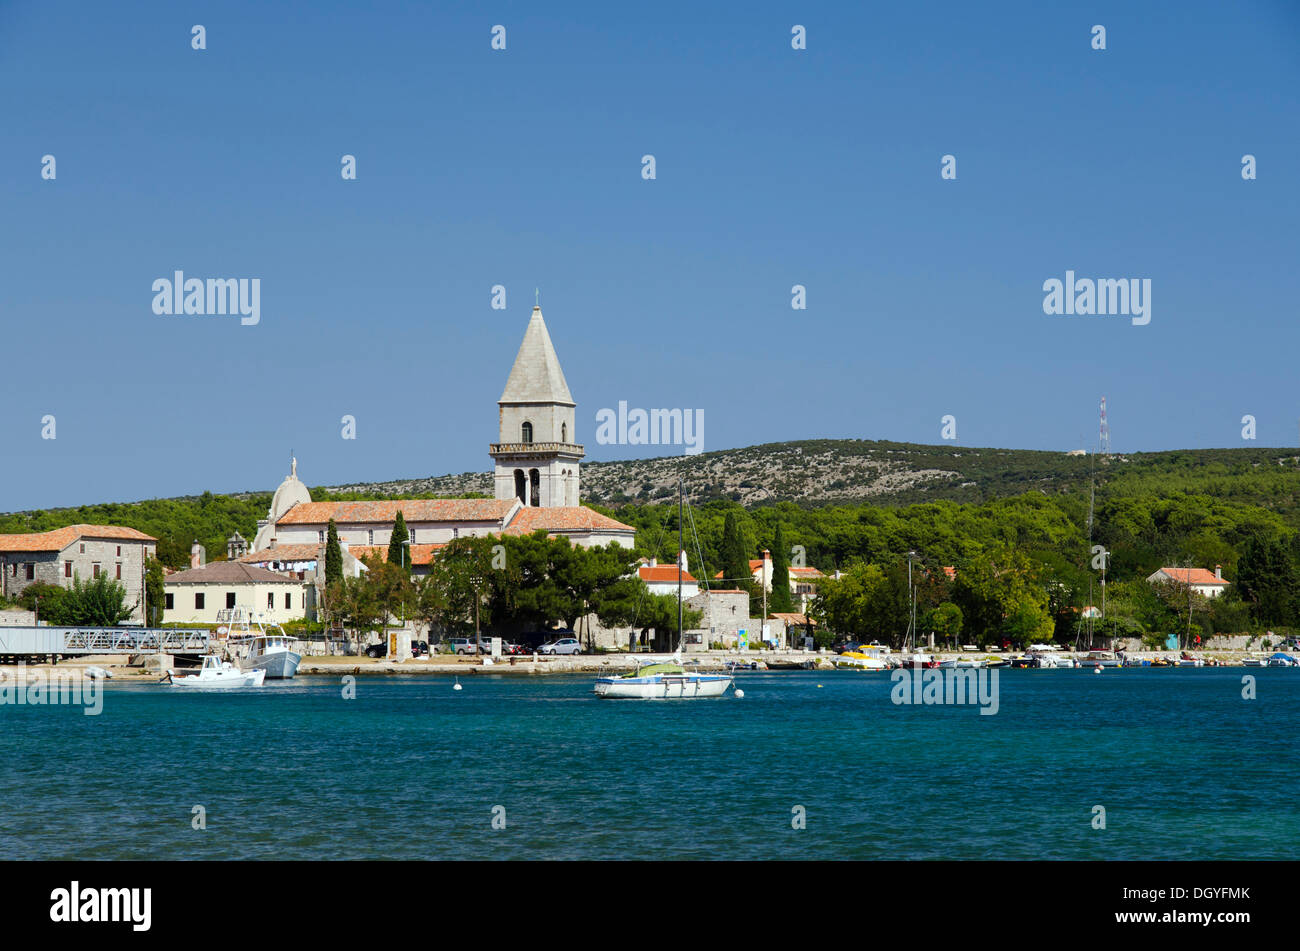 Church of Osor, Cres Island, Adriatic Sea, Kvarner Gulf, Croatia, Europe Stock Photo